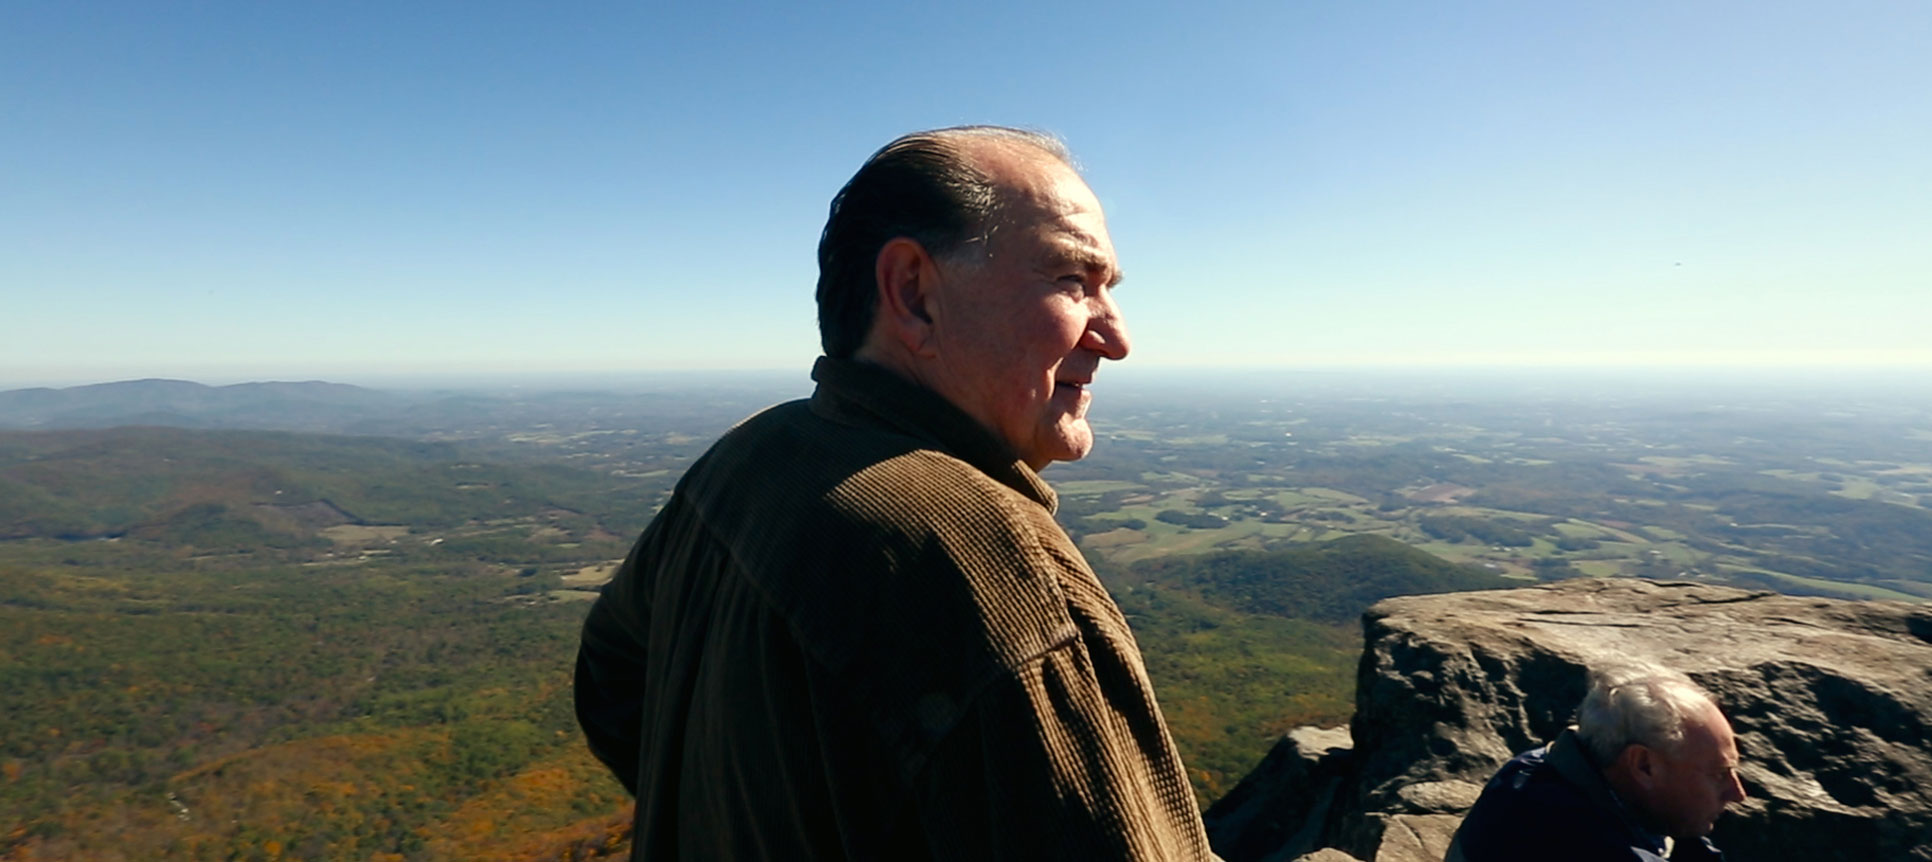 Jim Ashwell stands at the top of a mountain.